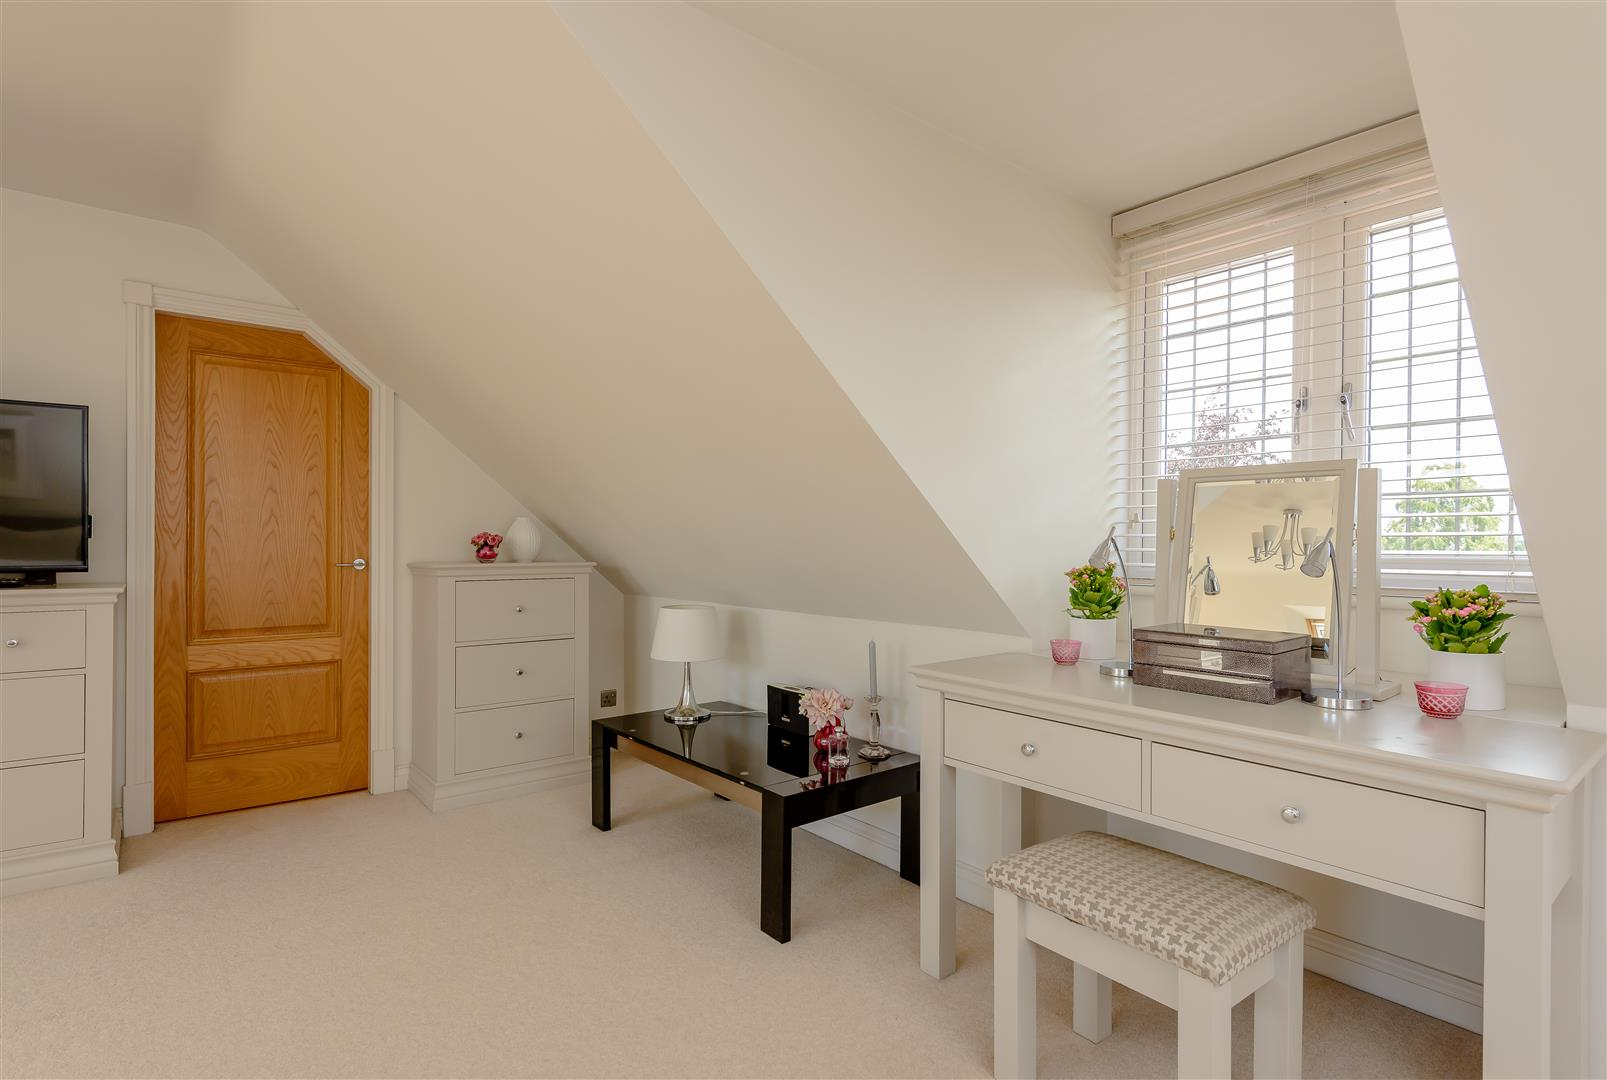 6 bedroom Detached House for sale in Coventry